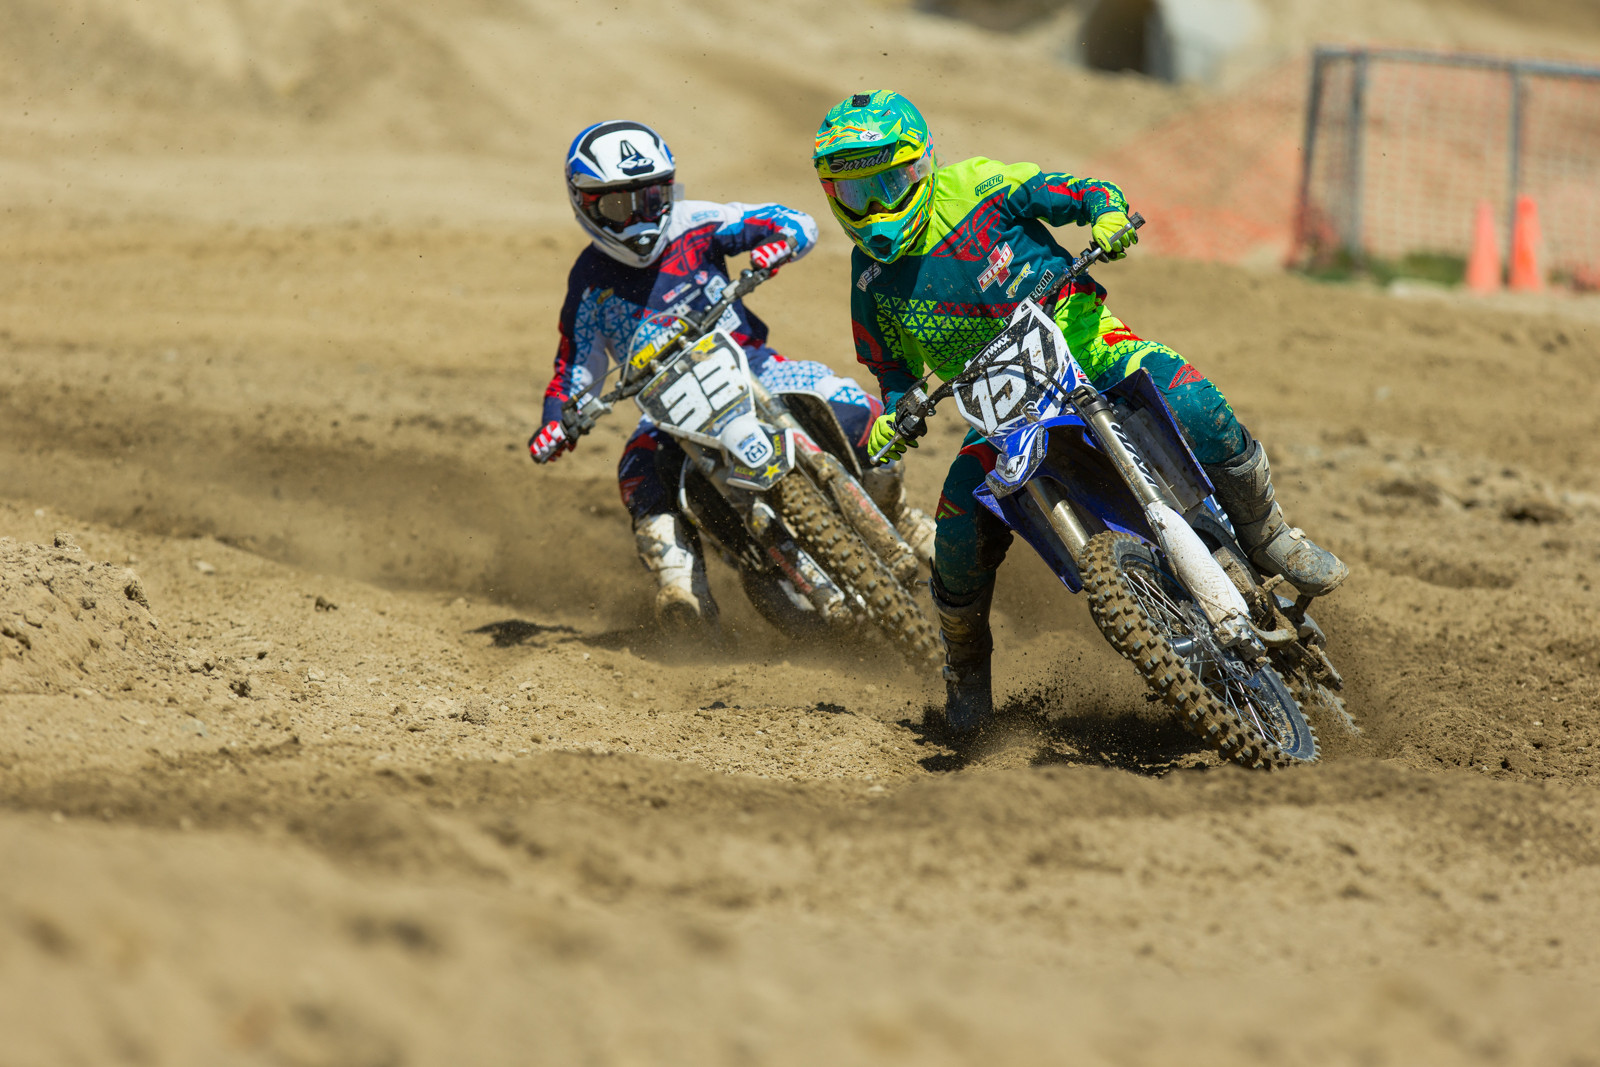 Ryan Surratt and Timmy Weigand - 2016 MTA World Two-Stroke Nationals - Motocross Pictures - Vital MX